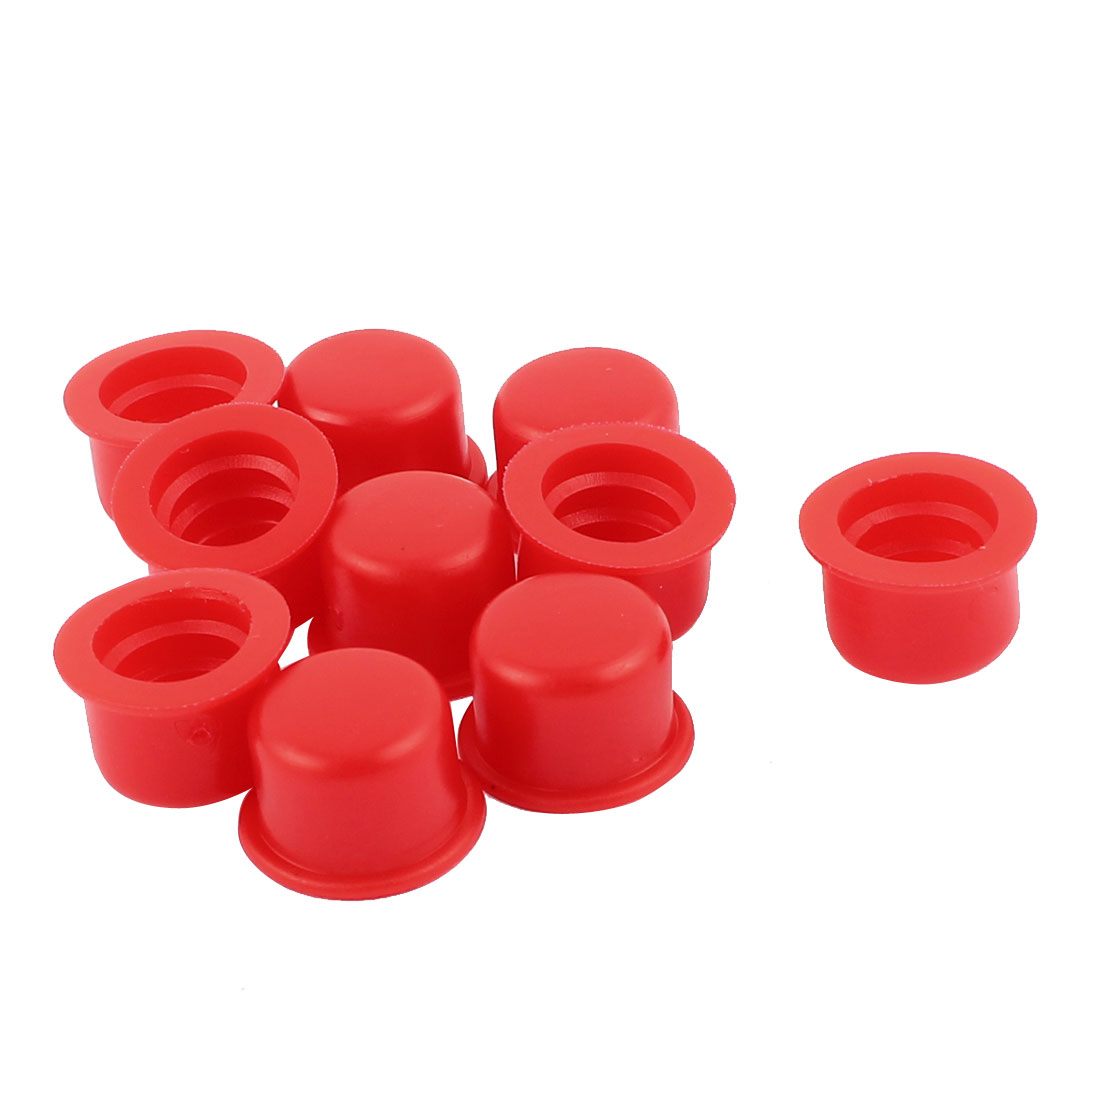 10 Pcs Red PVC End Cap Round 12mm Tubing Dustproof Tube Inserts